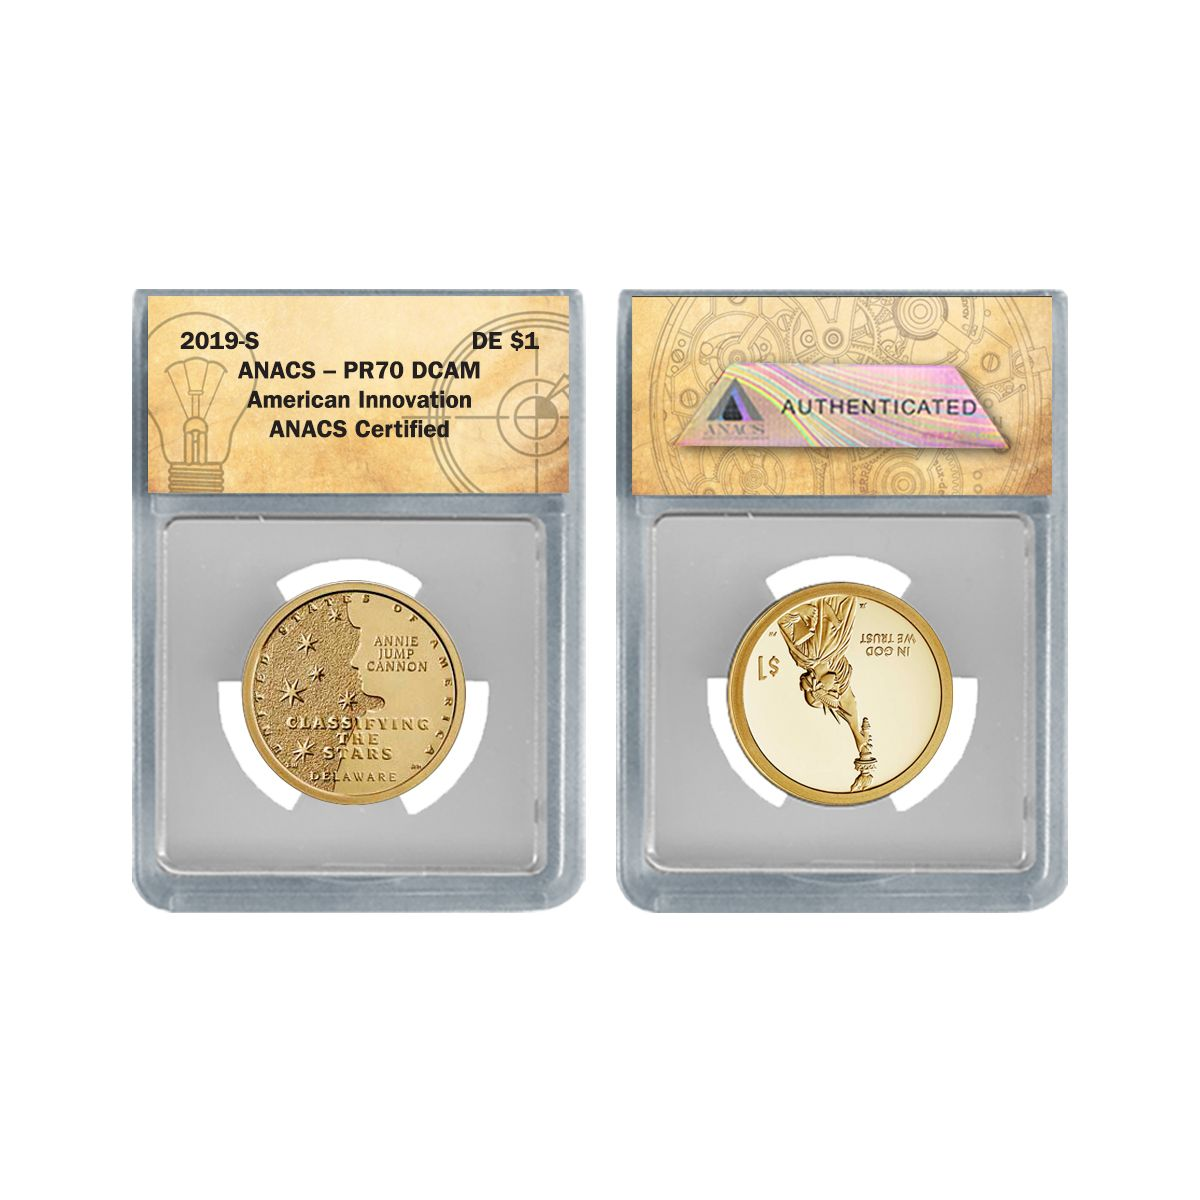 In Stock!! 2019-S Innovation Dollar-Classifying the Star Proof Coin